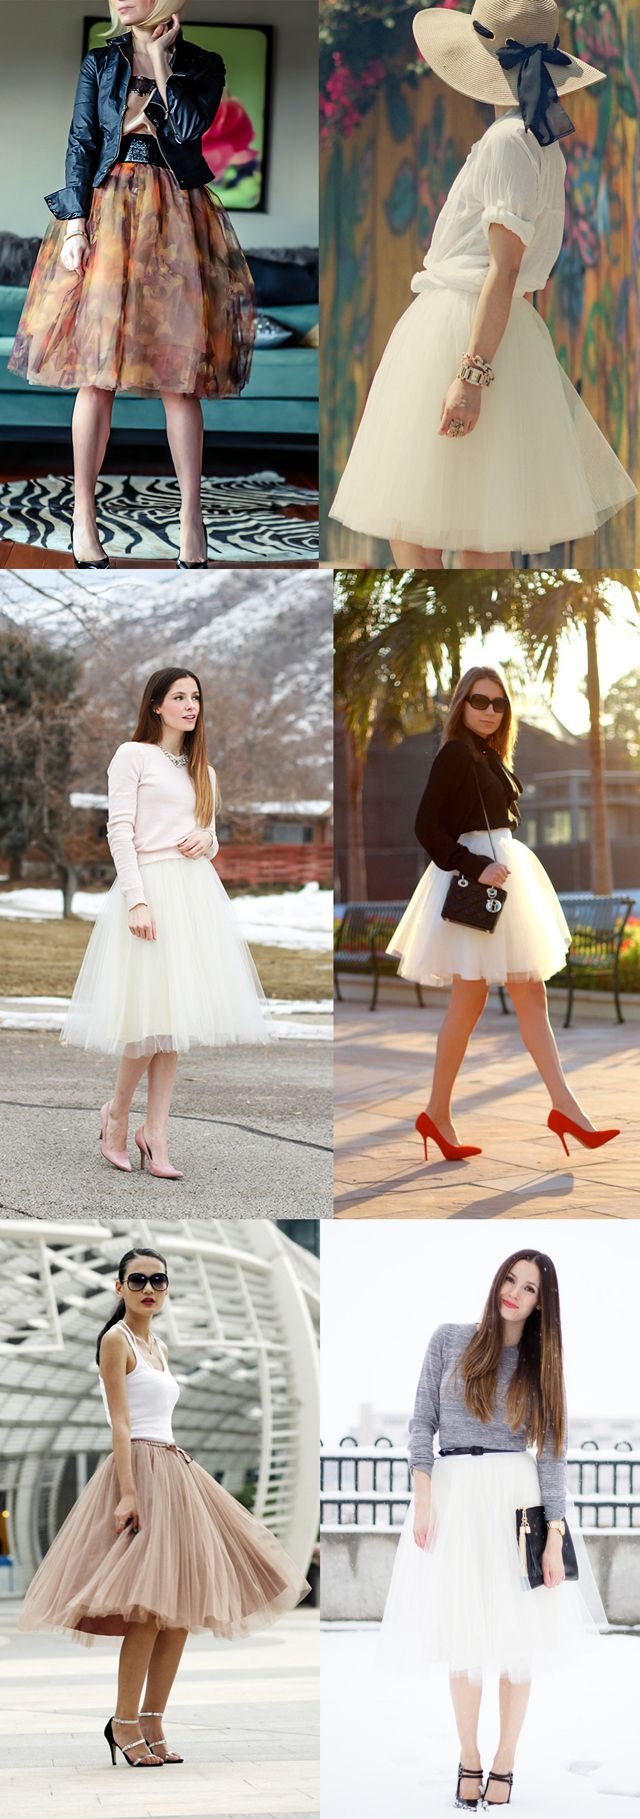 Tulle skirt combinations. Not sure if I could pull this off, but it looks super cute